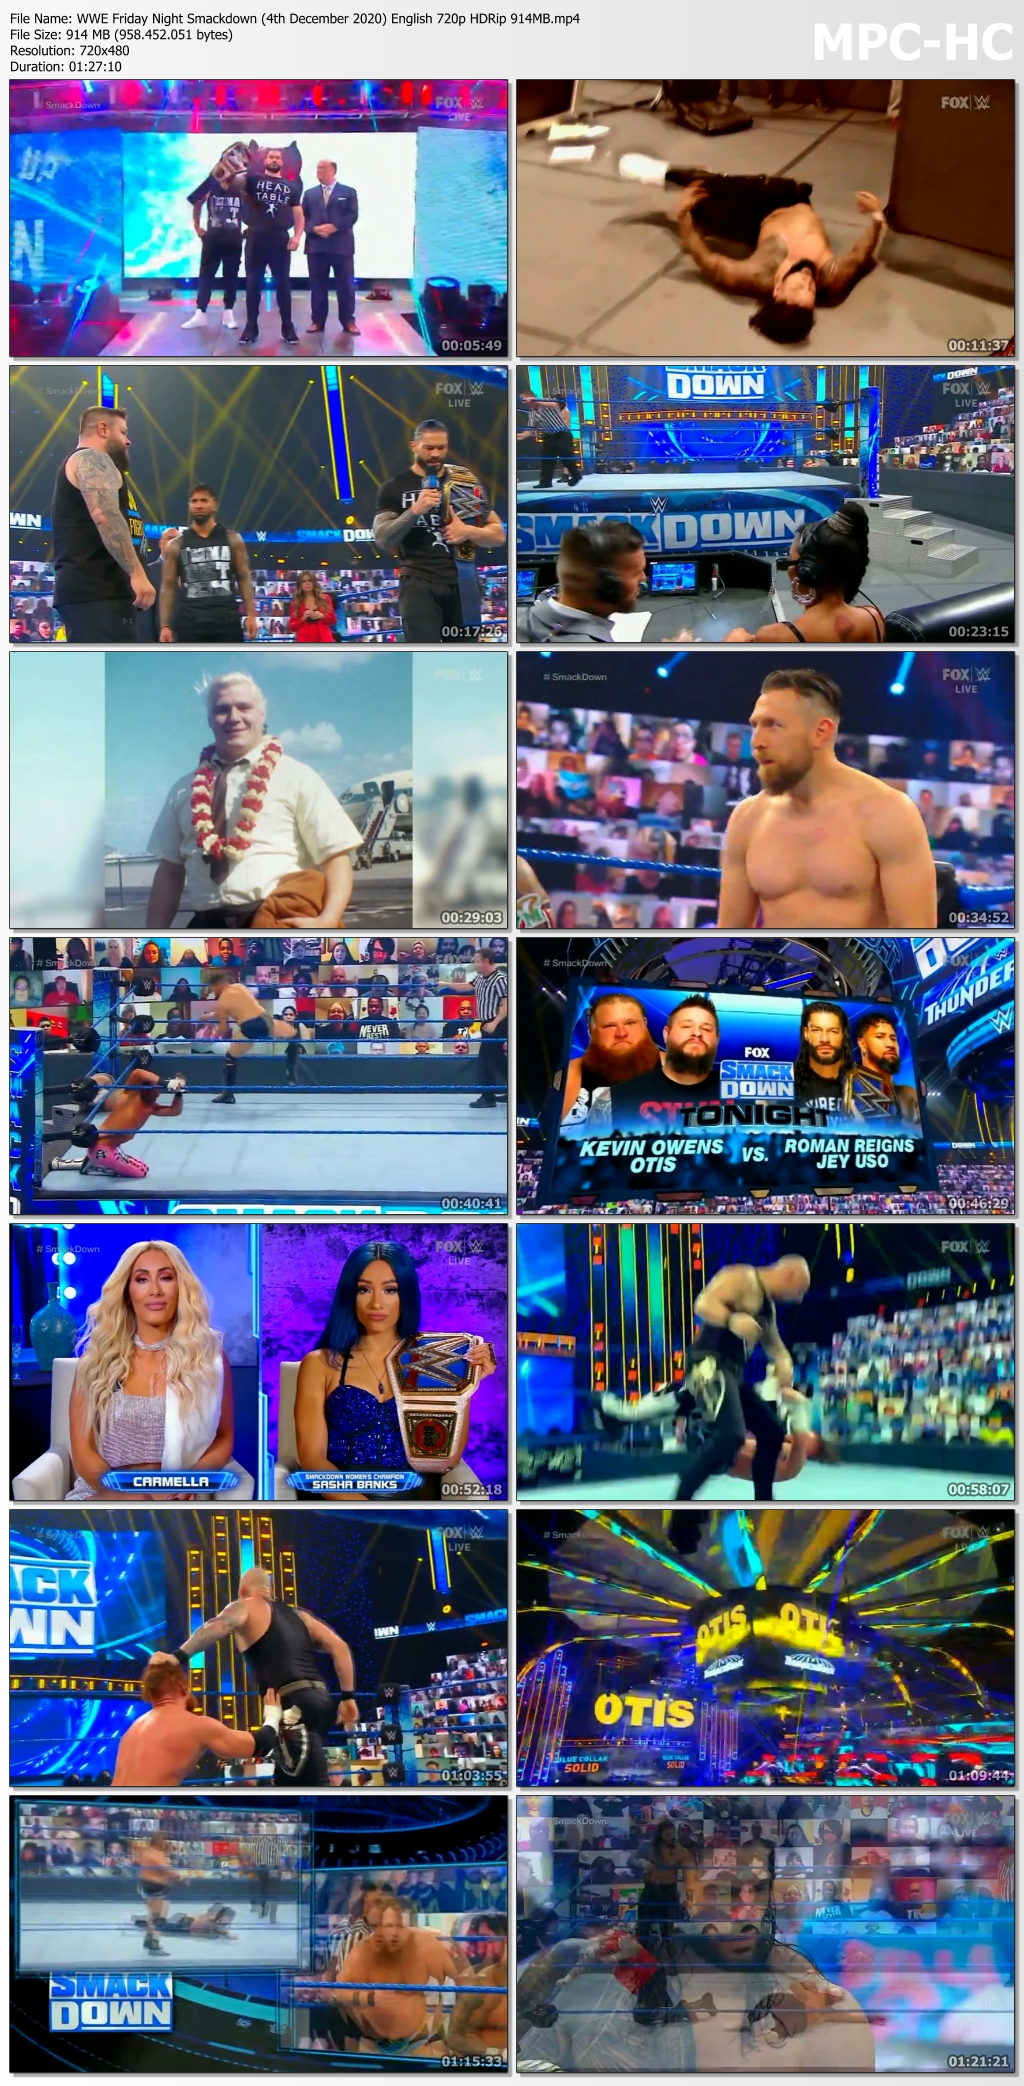 WWE-Friday-Night-Smackdown-4th-December-2020-English-720p-HDRip-914-MB-mp4-thumbs